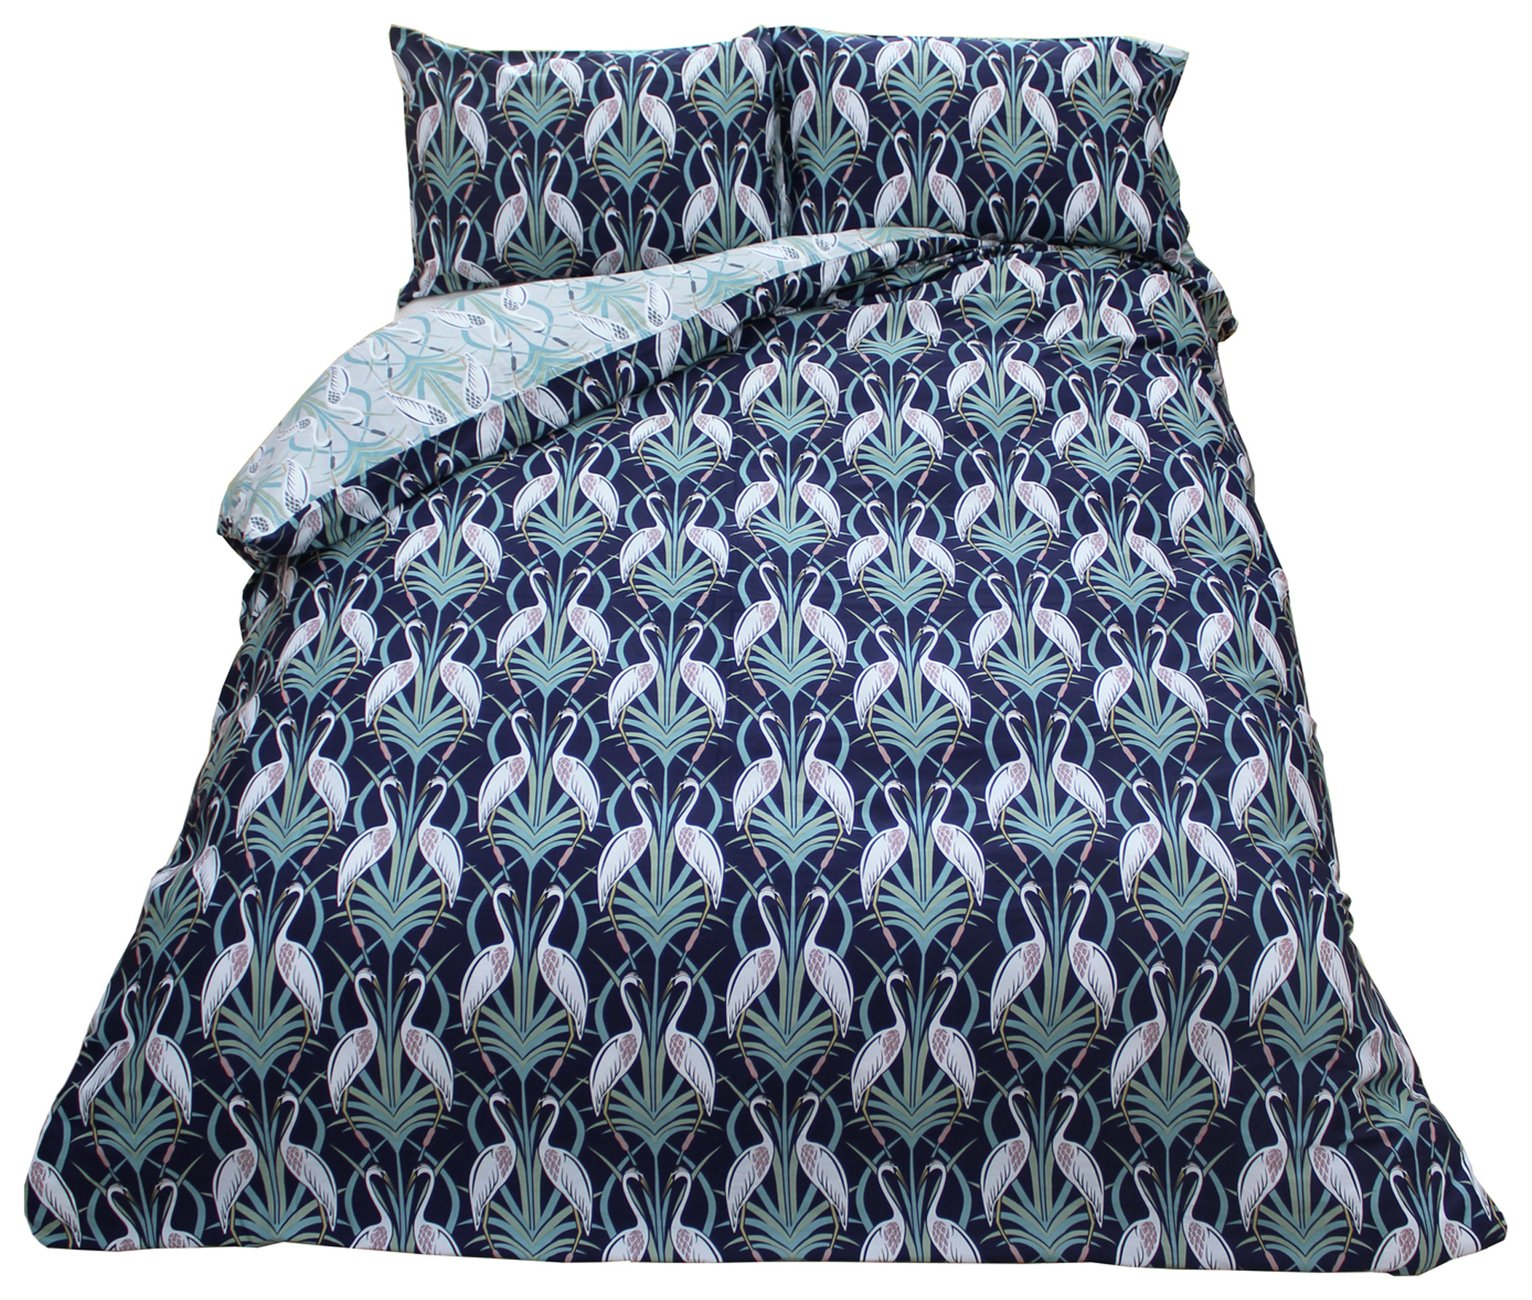 The Chateau by Angel Strawbridge Heron Bedding Set - King